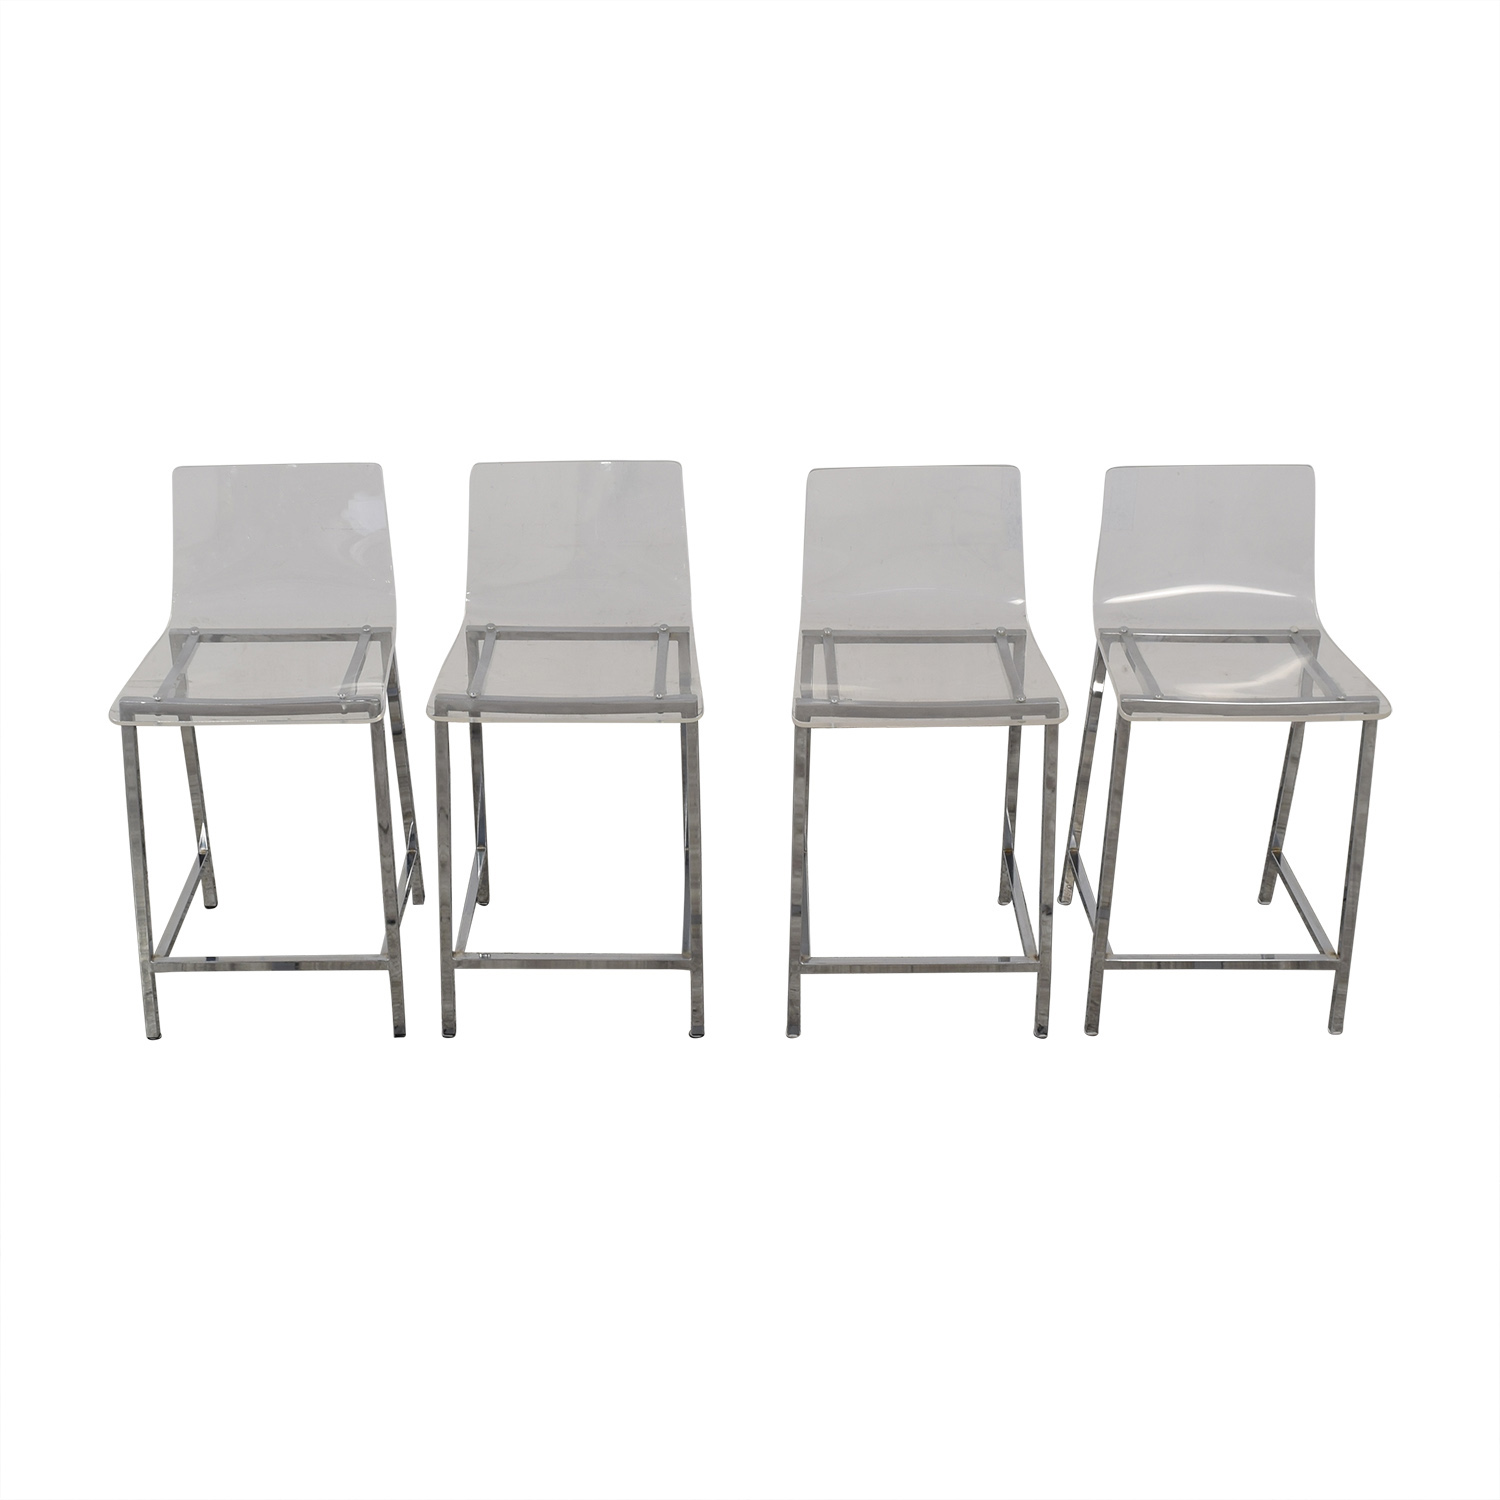 CB2 Chiaro Clear Counter Stool CB2